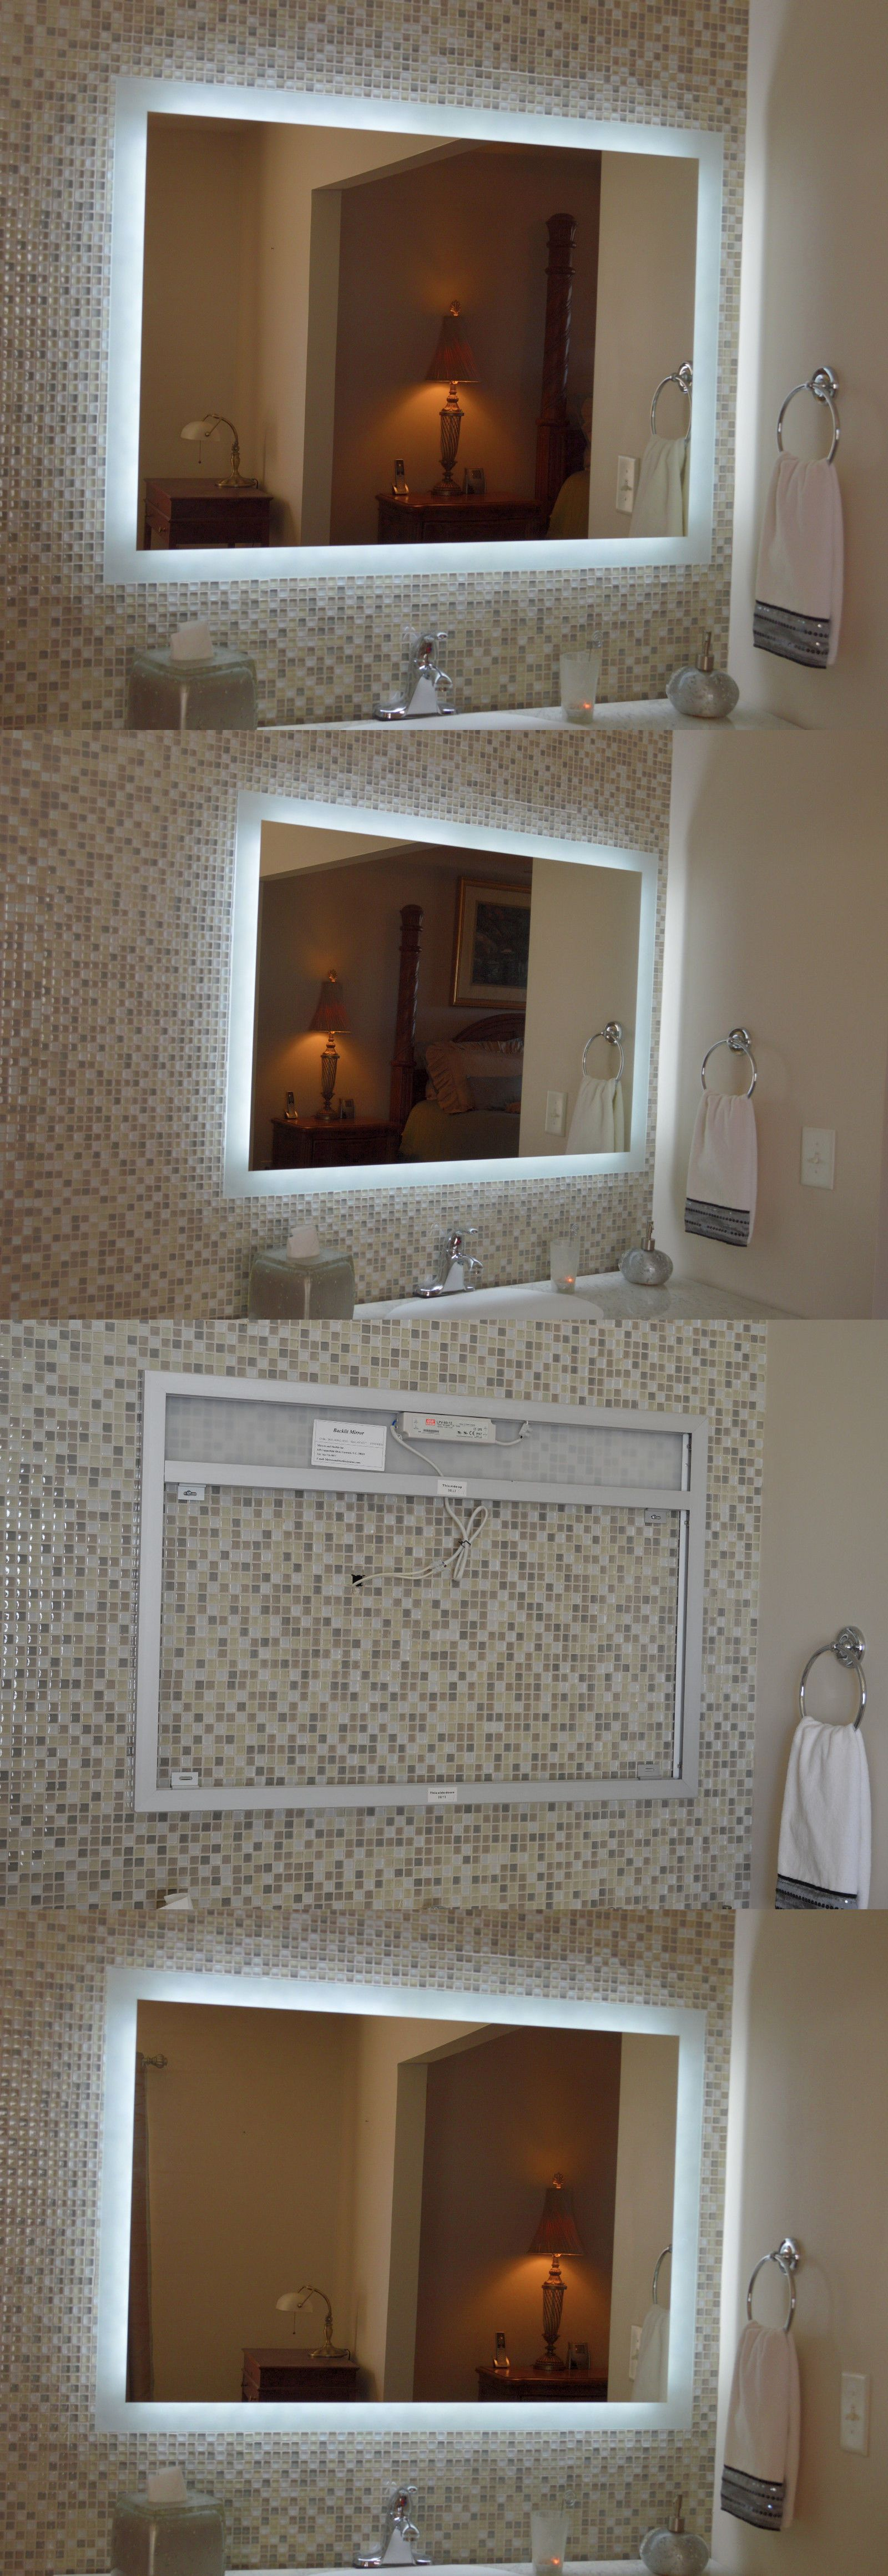 Mirrors 133693 Lighted Vanity Mirror Make Up Wall Mounted Led Bath